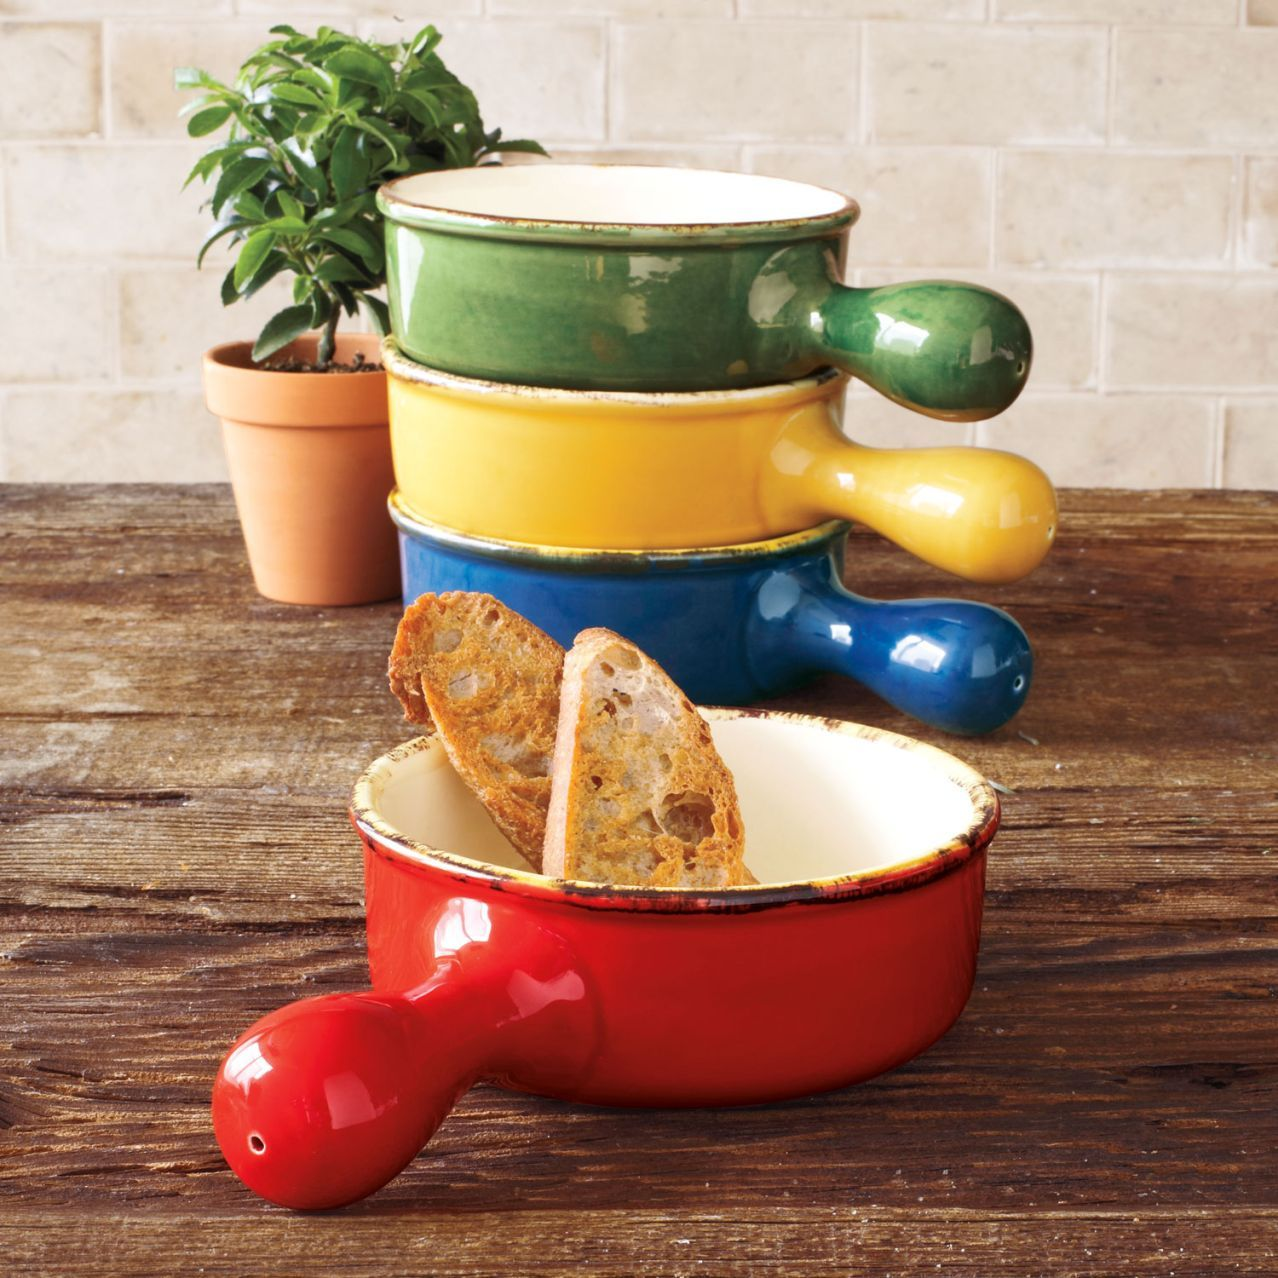 Italian Ceramic One-Handled Soup Bowls | Sur La Table & Italian Ceramic One-Handled Soup Bowls | Sur La Table | Gifts ...